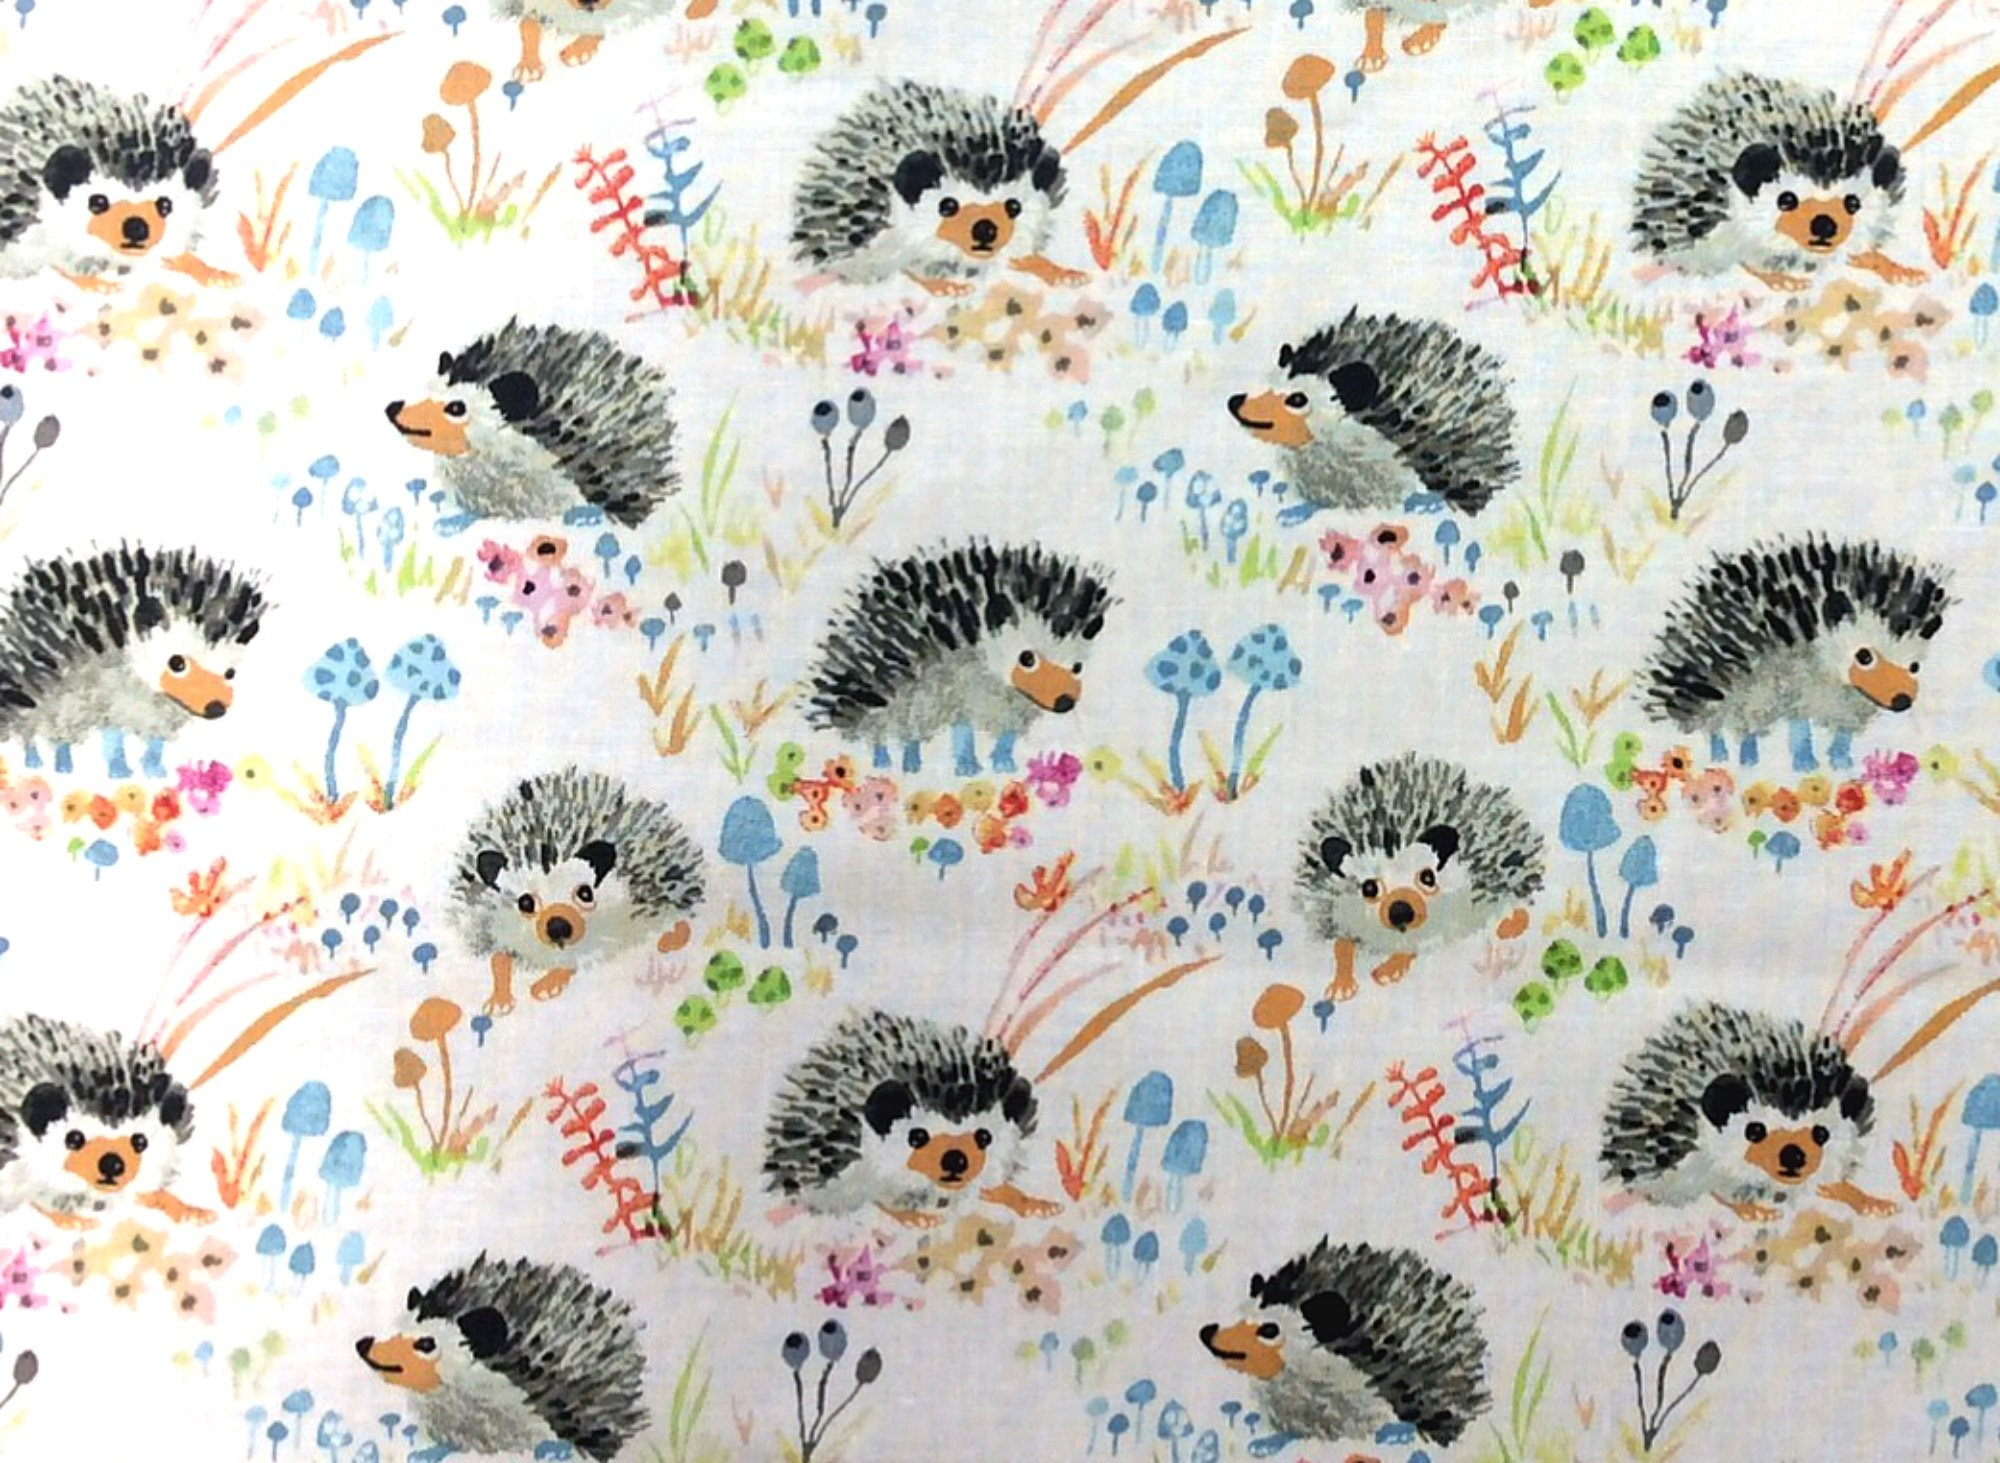 Enchanted Forest Hedgehog Forest Mushroom Floral Betsy Olmsted Watercolor Illustration Cotton Quilt Fabric WI113